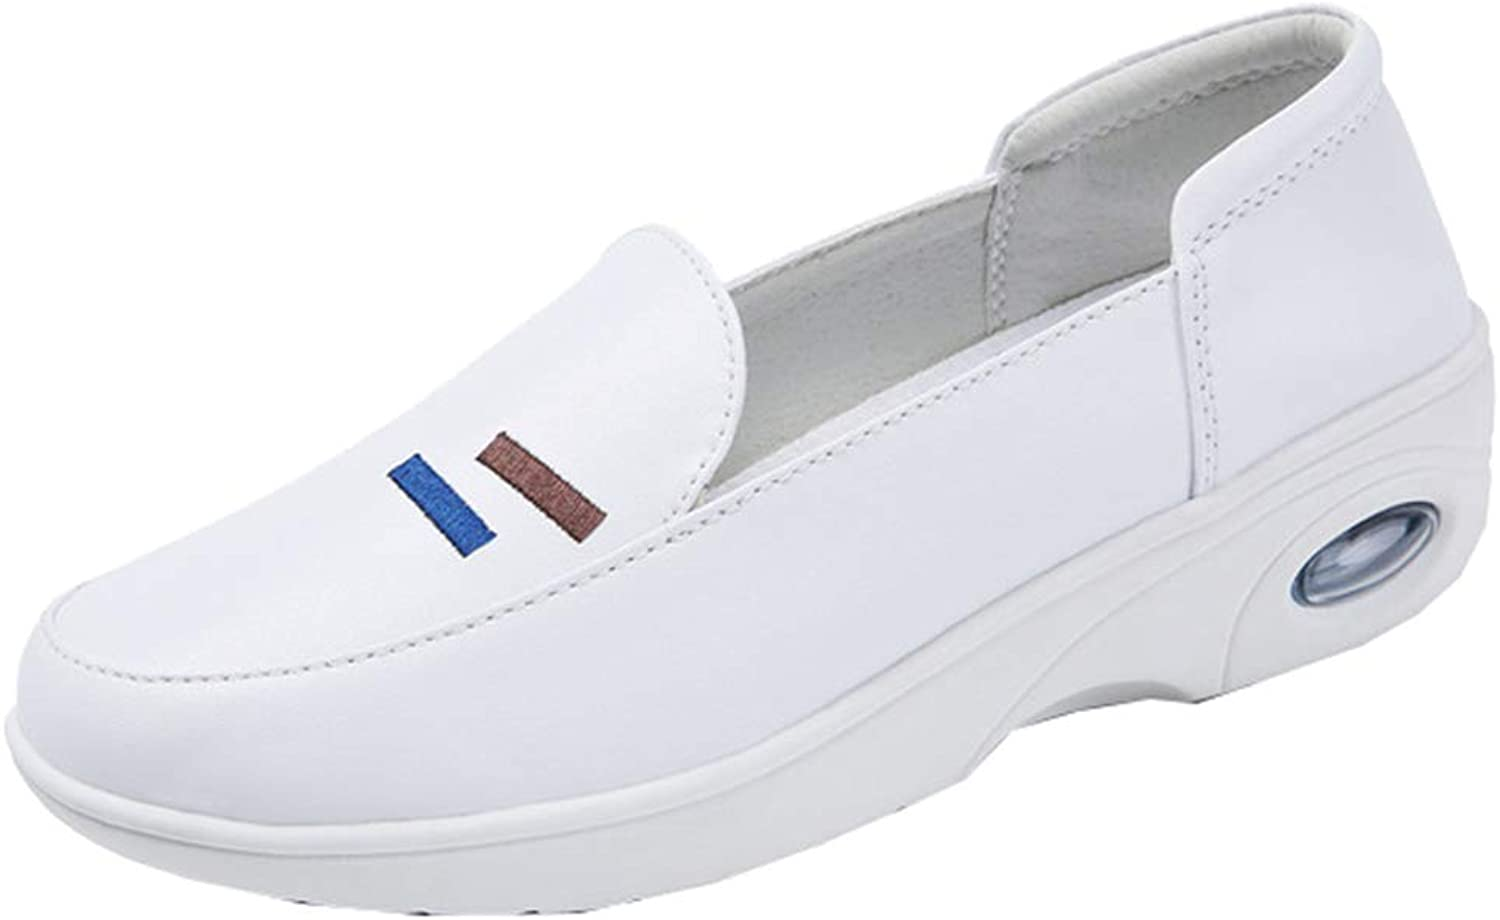 AGOWOO Womens Slip On Loafers Nursing Air Sole Anti-Slip Work shoes